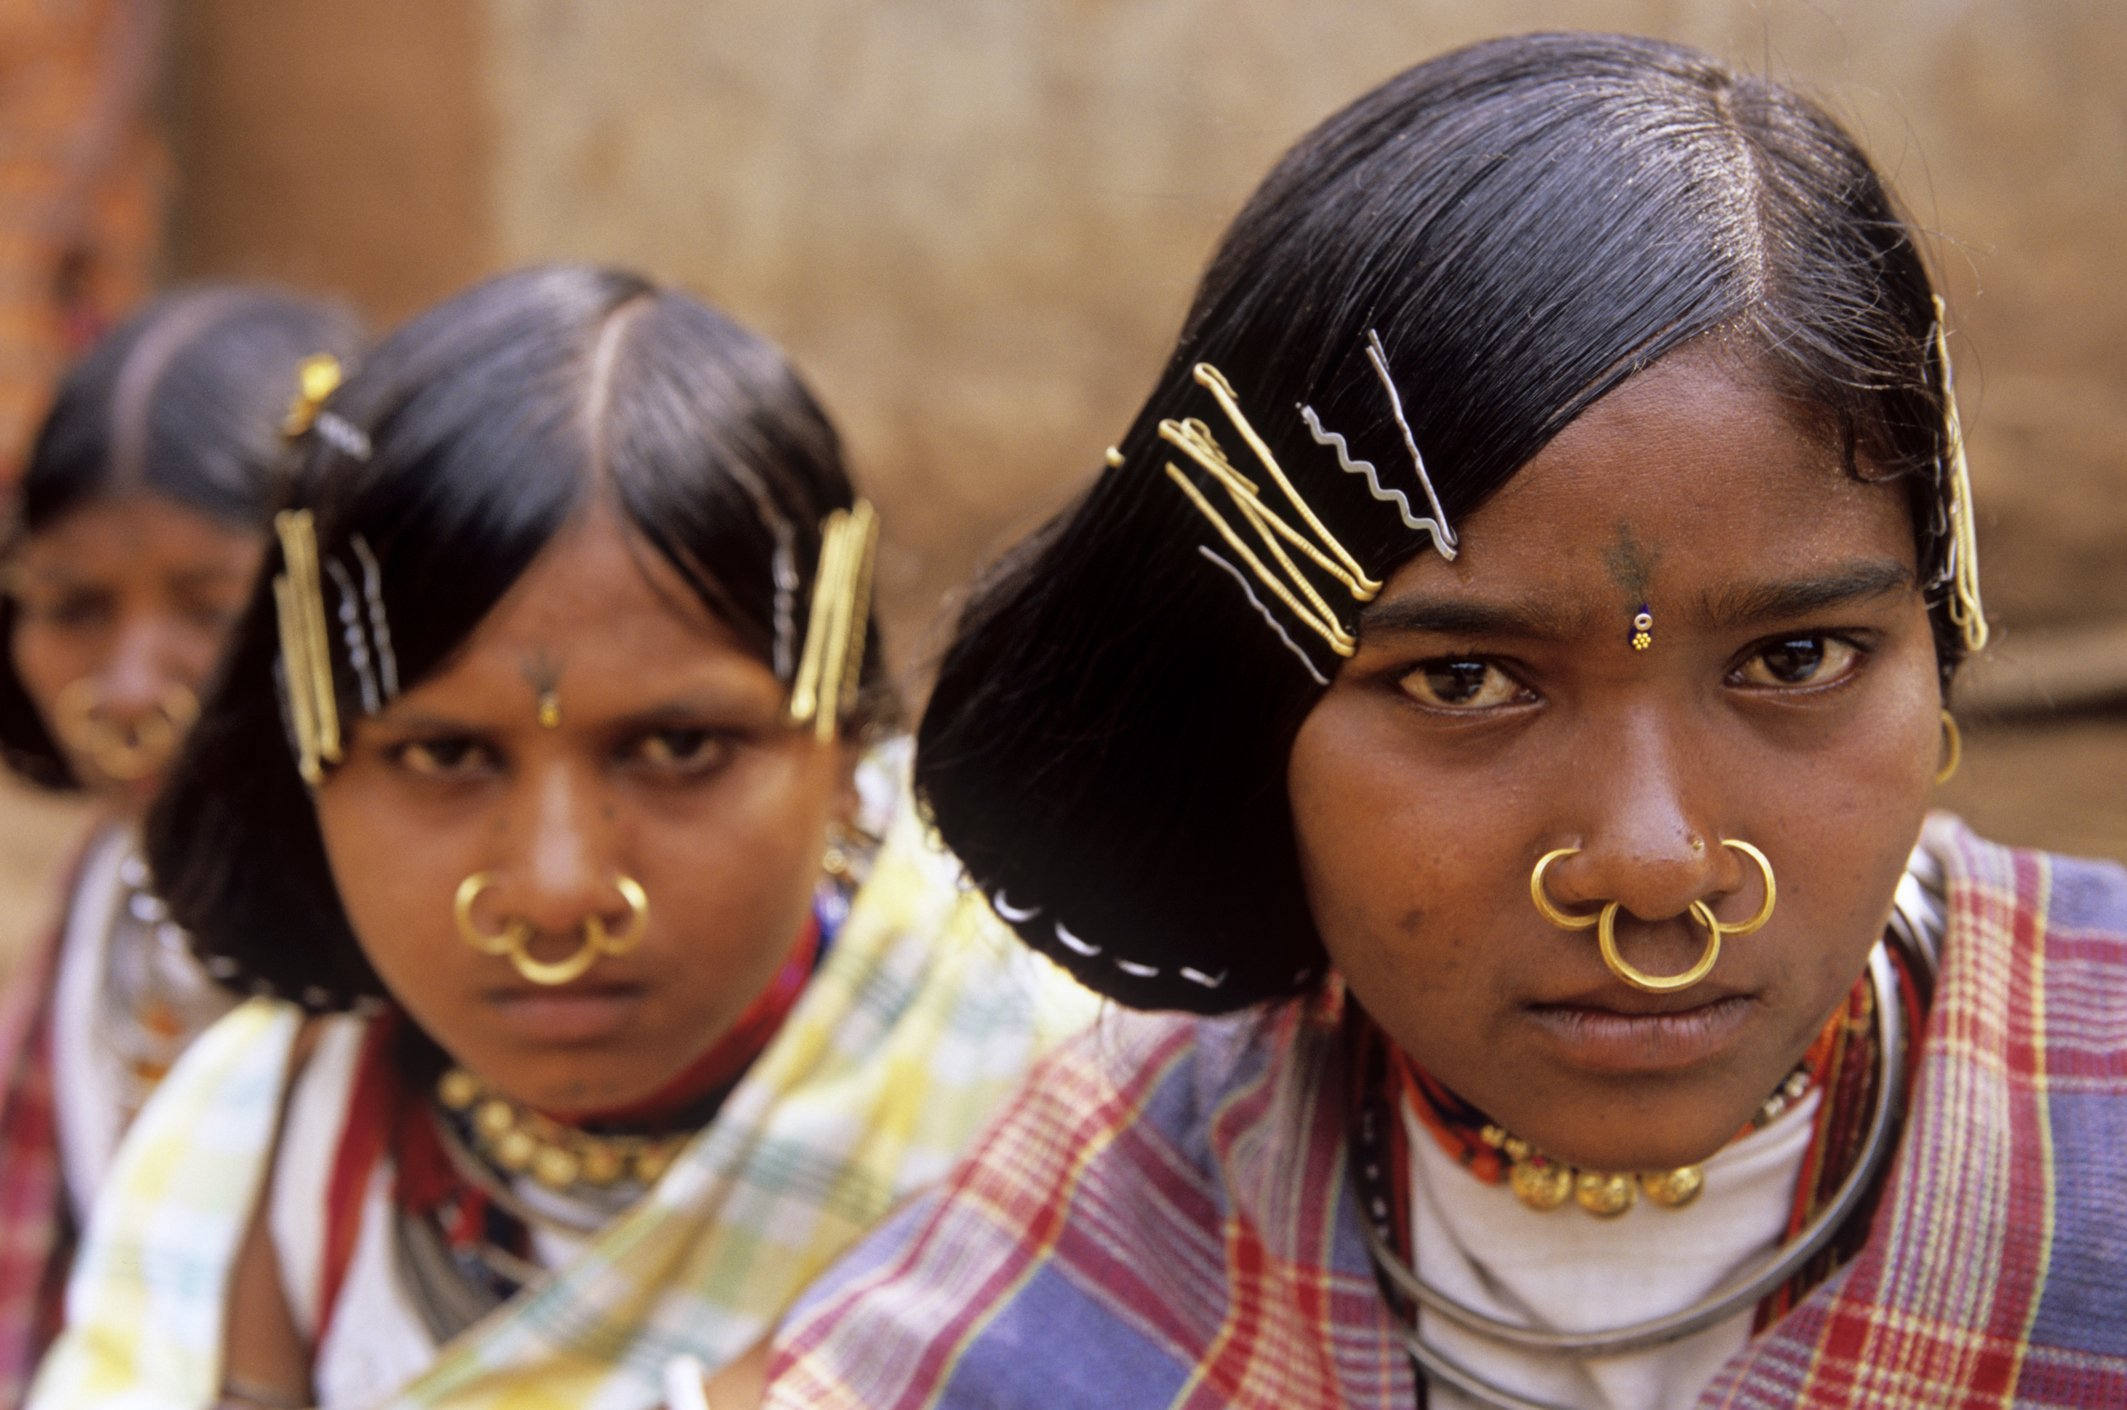 The Almost Forgotten Tribes Of The World